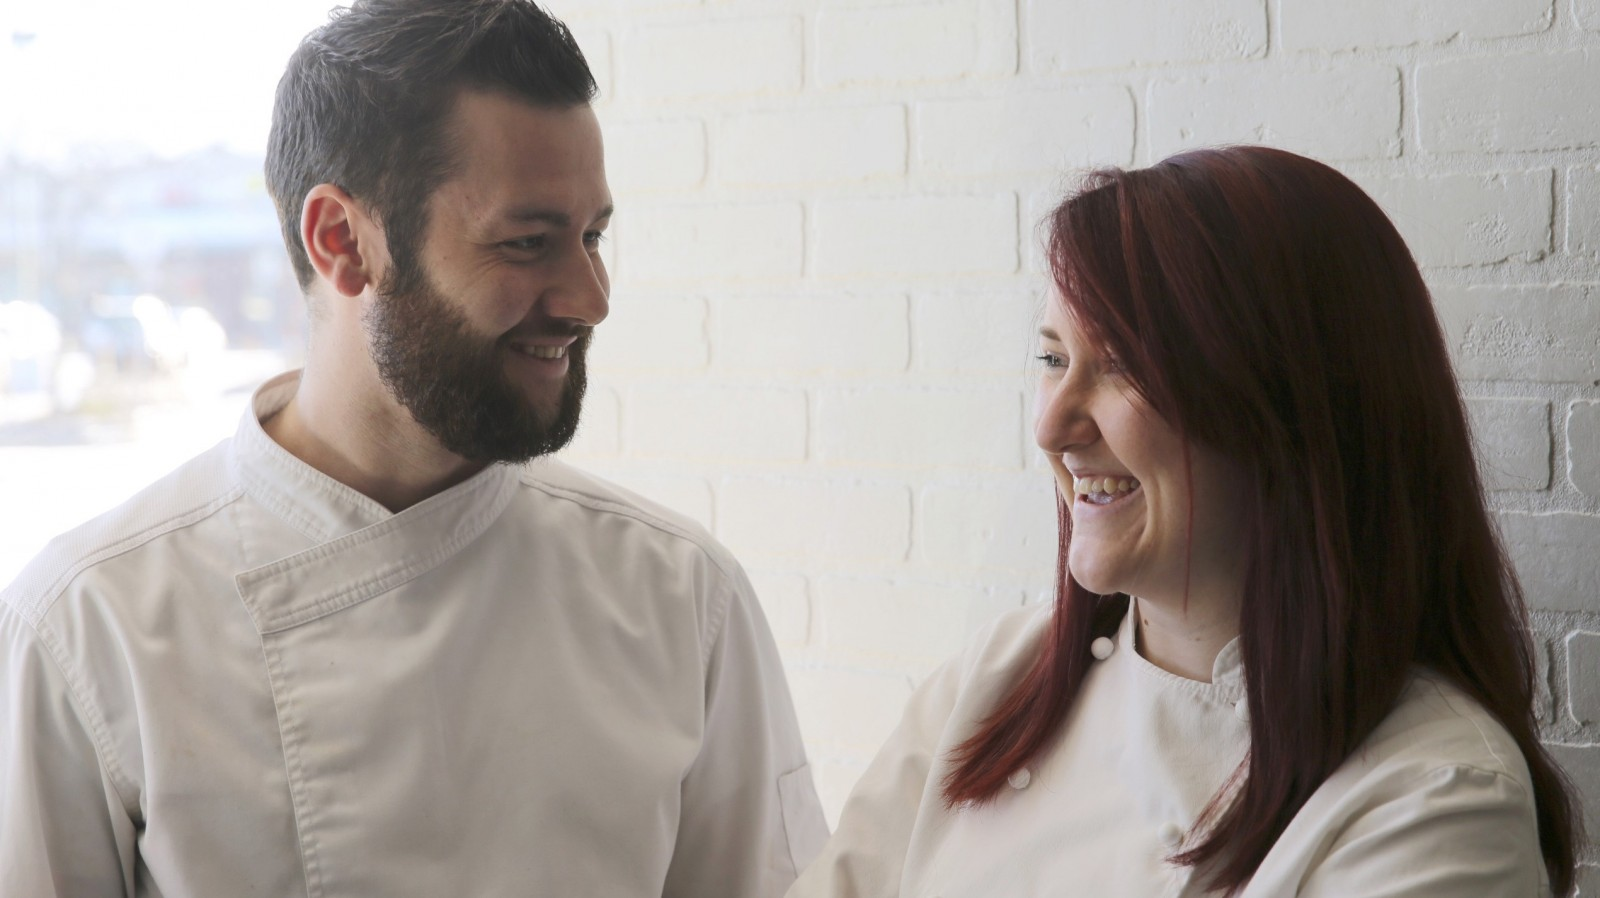 Chef Scott Kollig and his wife Pastry Chef Monica Kollig are partners in the upcoming Aro Bar de Tapas. (Photo: Aro Bar de Tapas)